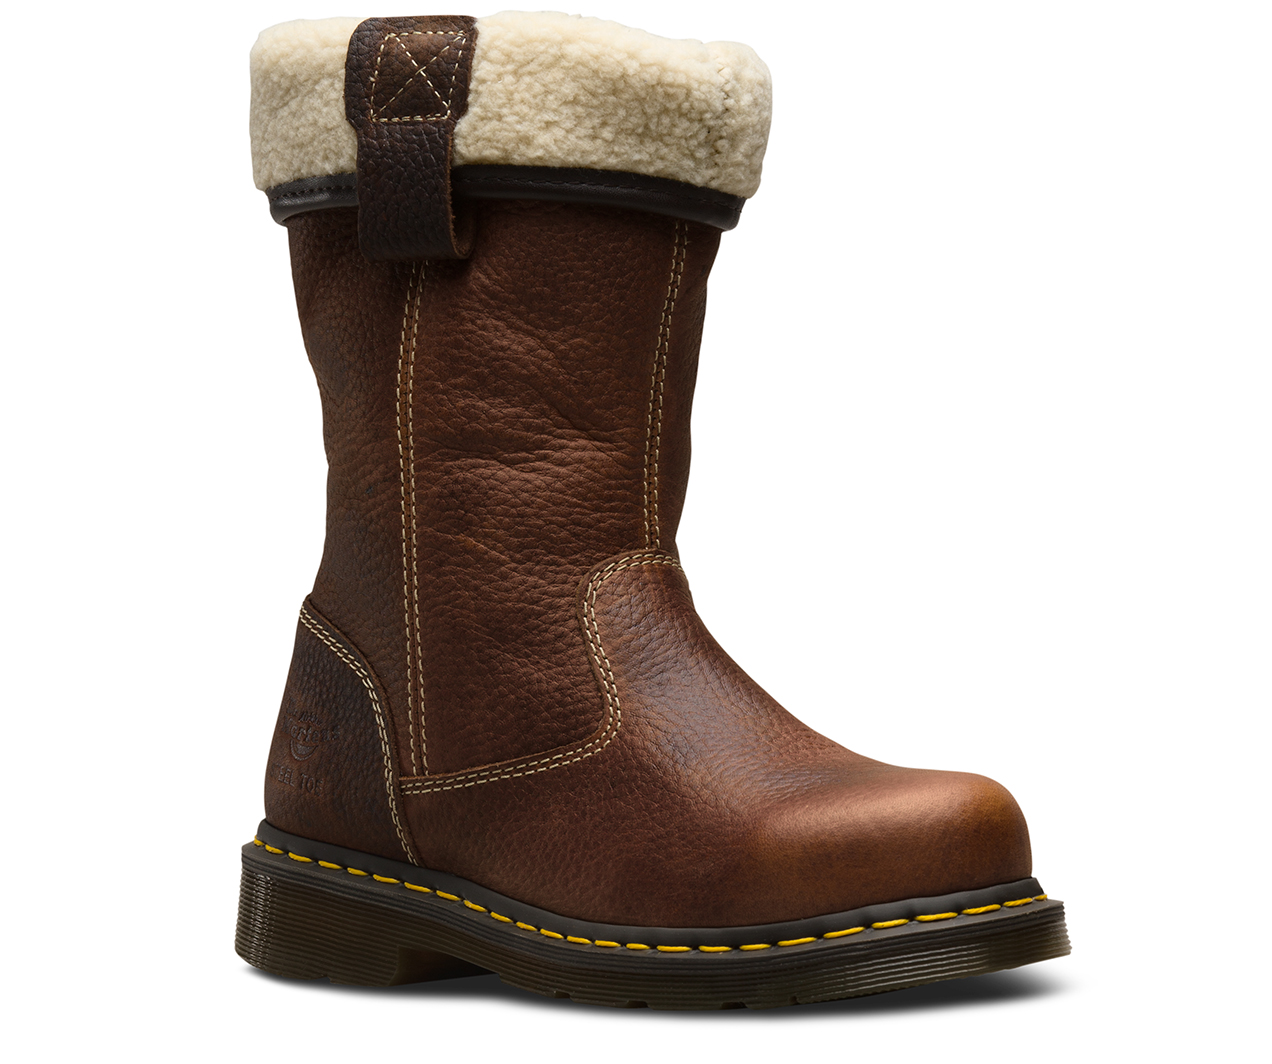 b4914bf9529 Details about Womens Dr Doc Martens Rosa Brown Leather Steel Toe Cap Safety  Work Rigger Boots